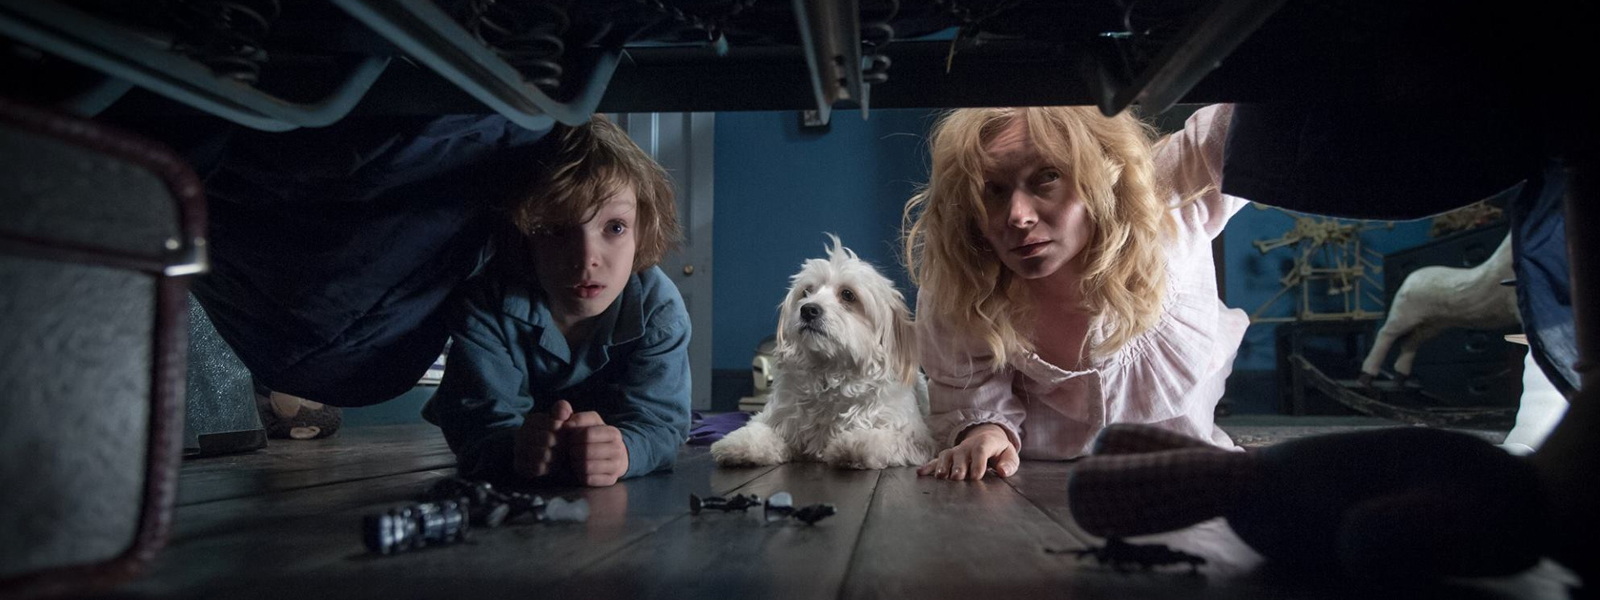 Noah Wiseman and Essie Davis in THE BABADOOK